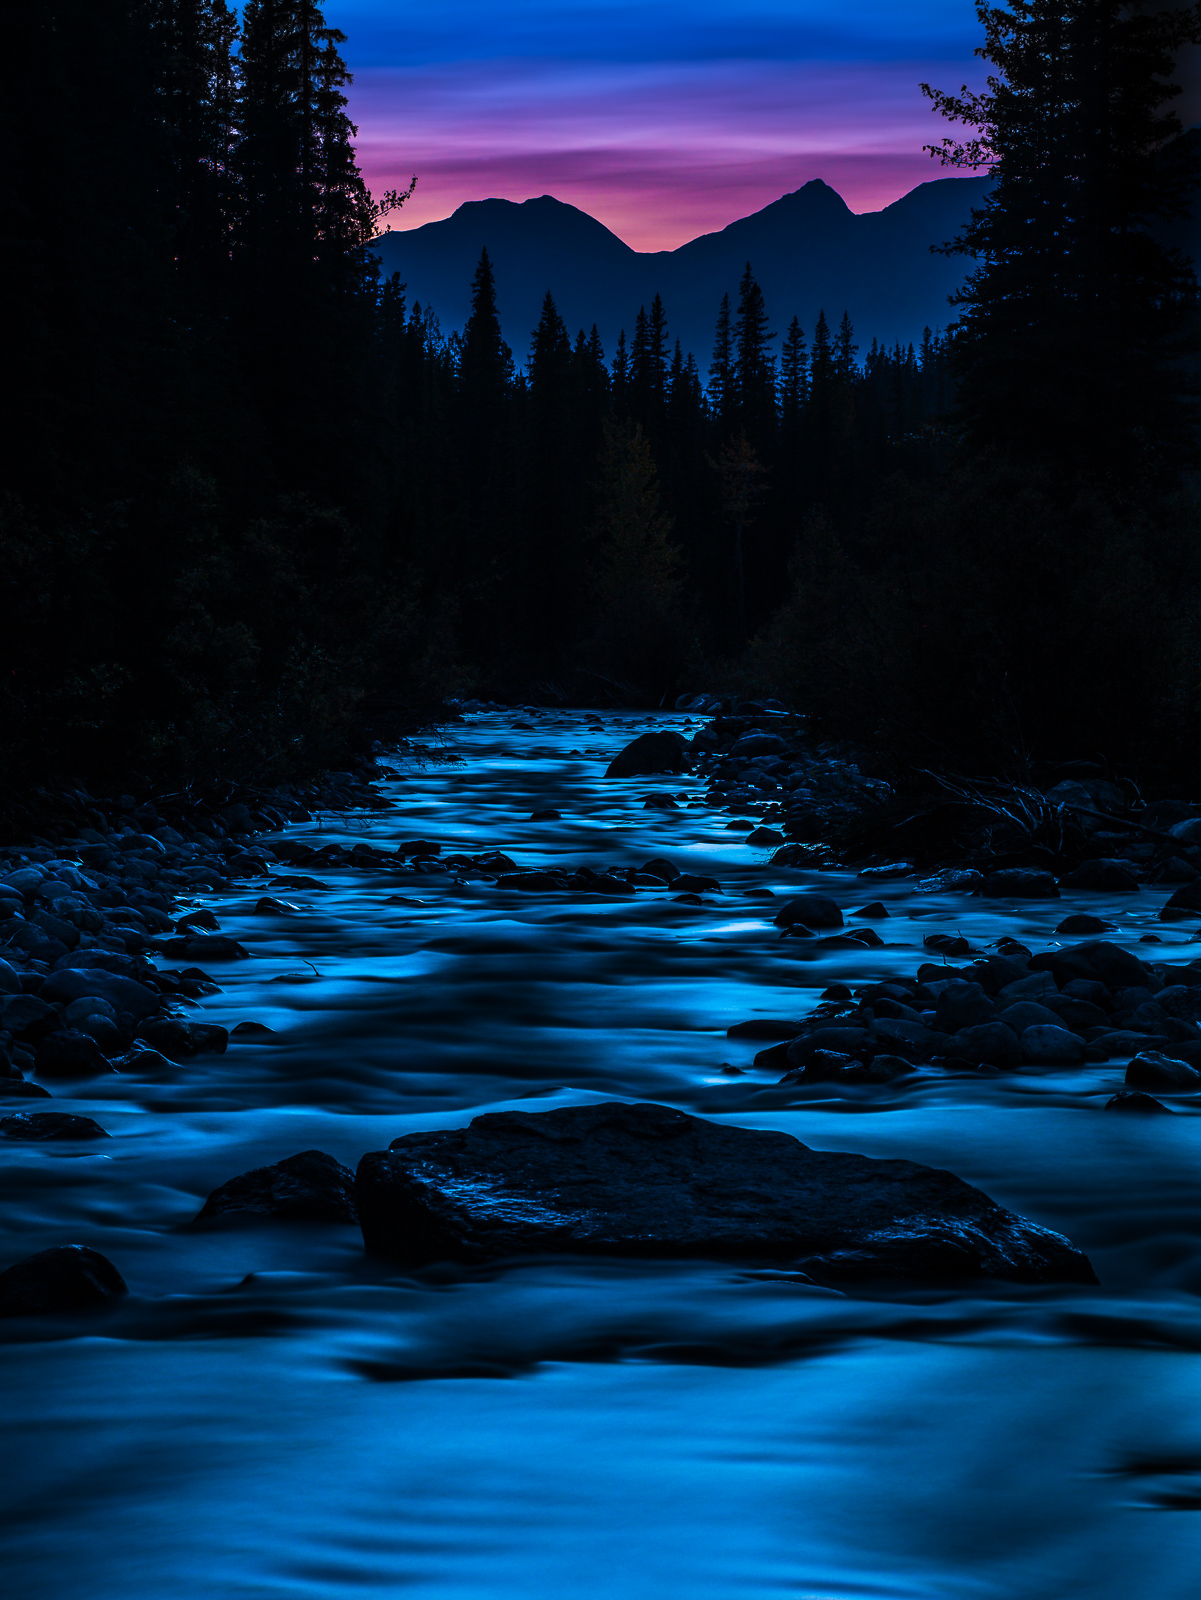 Maligne River,Jasper National Park,Maligne River,Canada,Tripod, photo